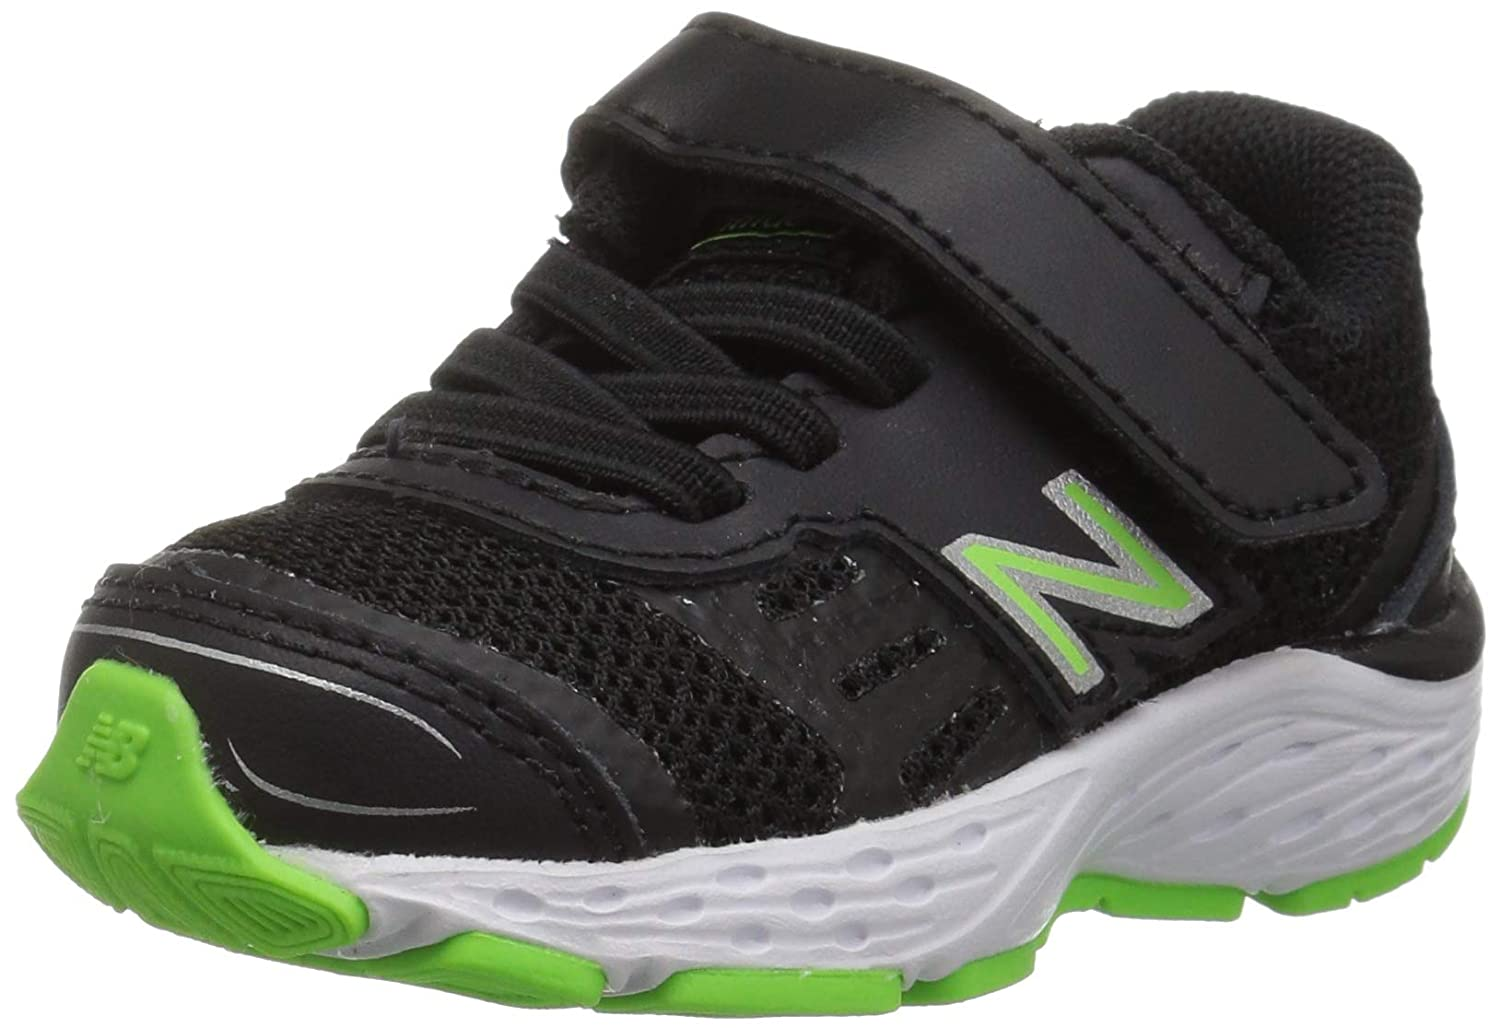 【予約販売品】 [ニューバランス] ユニセックスキッズ NB19-IA680AG-Infant NB19-IA680AG-Infant Girls B07BQX1QF5 Black/Rbg Black/Rbg Green リトルキッズ(4~8才) US リトルキッズ(4~8才)|Black/Rbg Green|1 W US Little Kid, MEGA STAR:285e5e66 --- mfphoto.ie